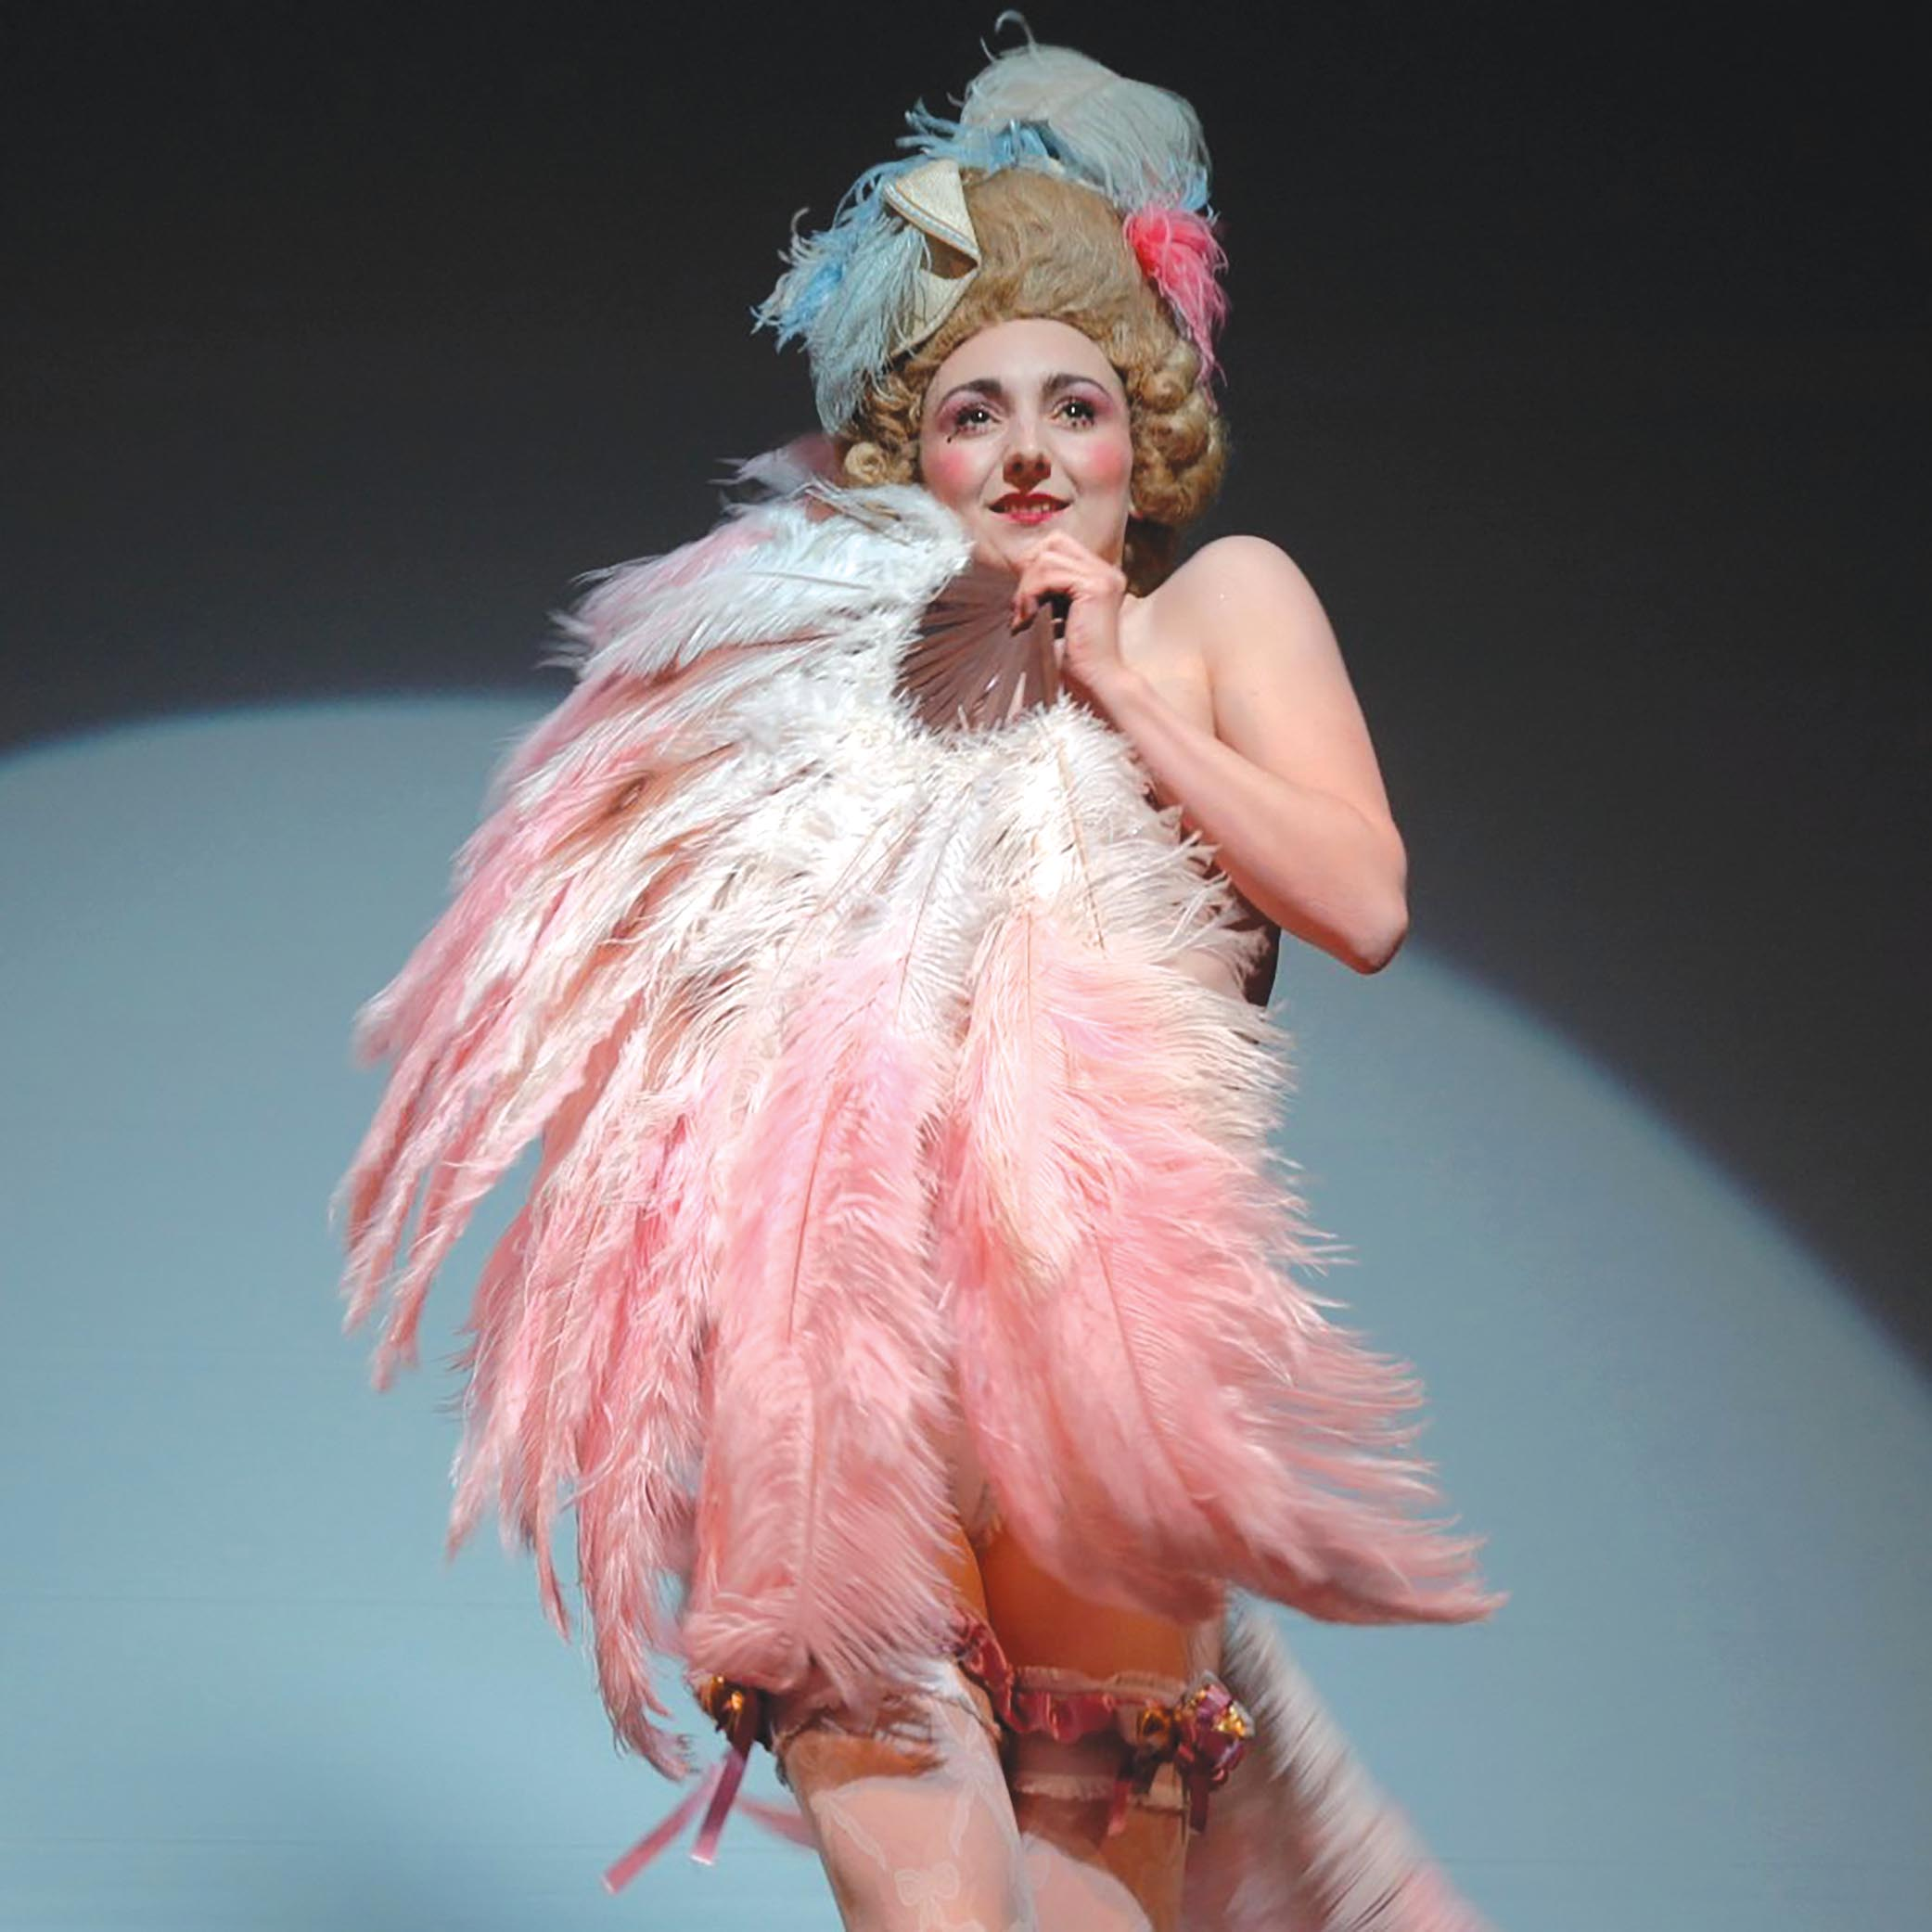 Flaunting her feathers as Marie Antoinette